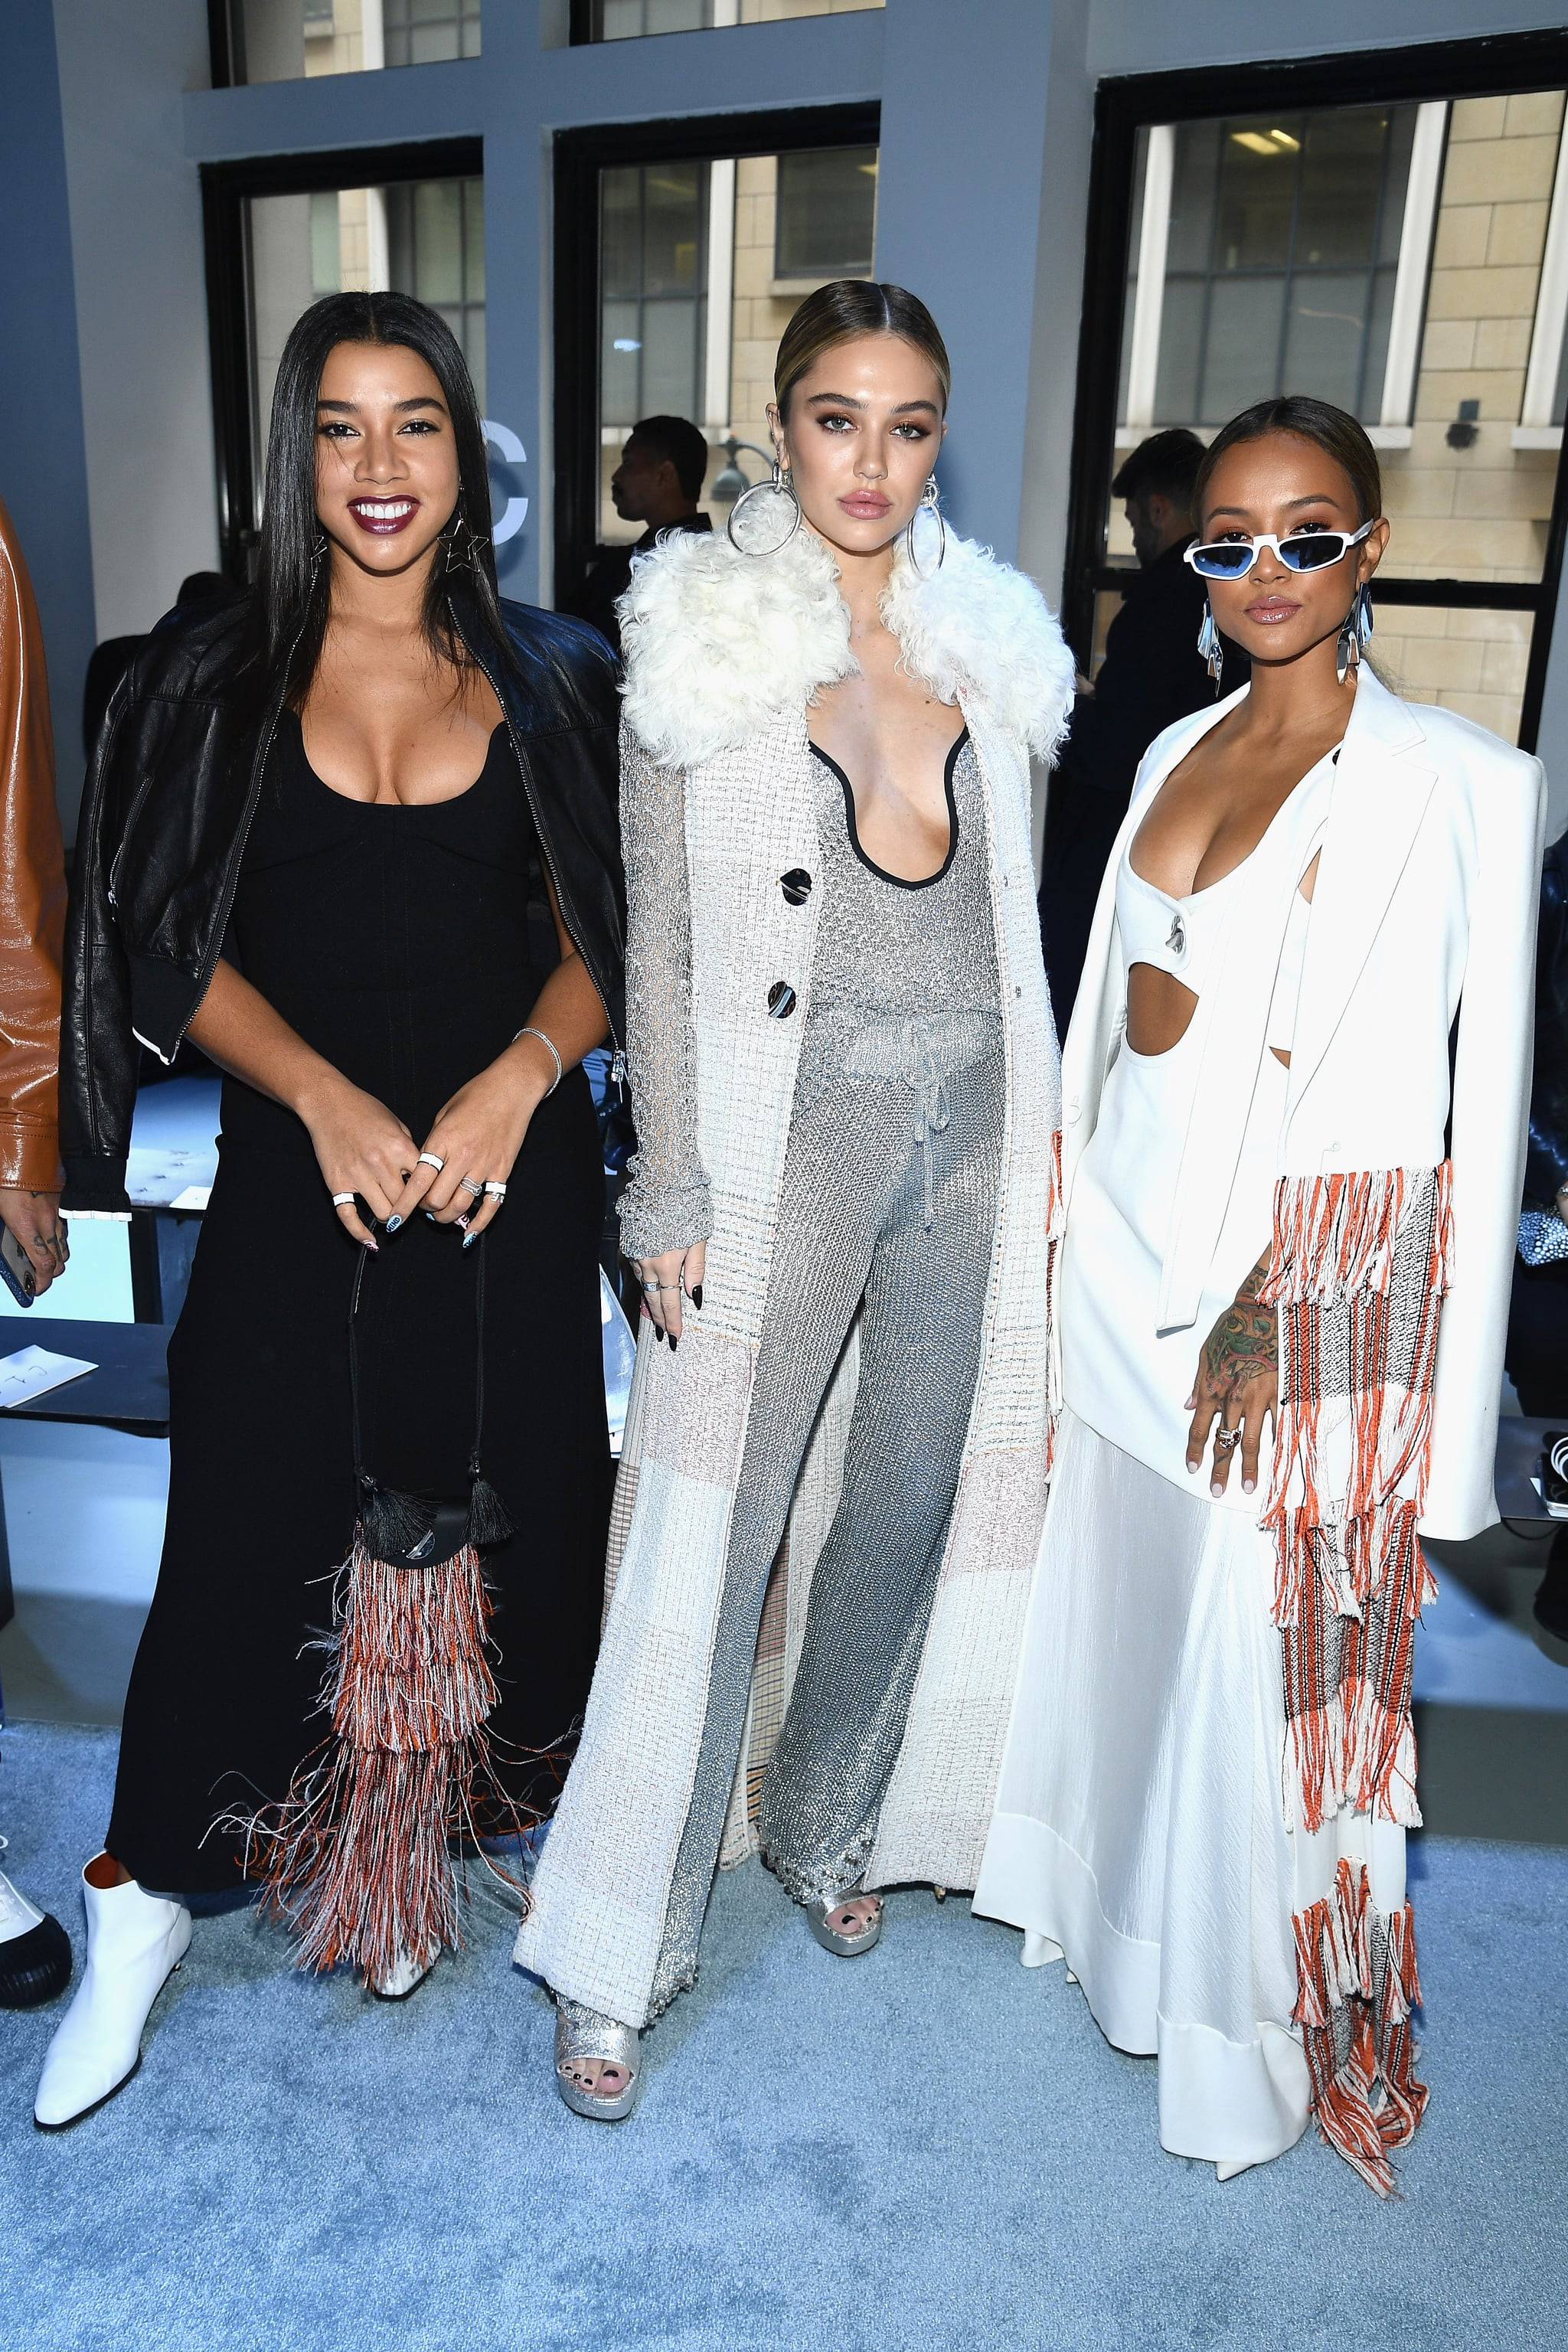 Hannah Bronfman, Delilah Belle Hamlin, and Karrueche Tran at